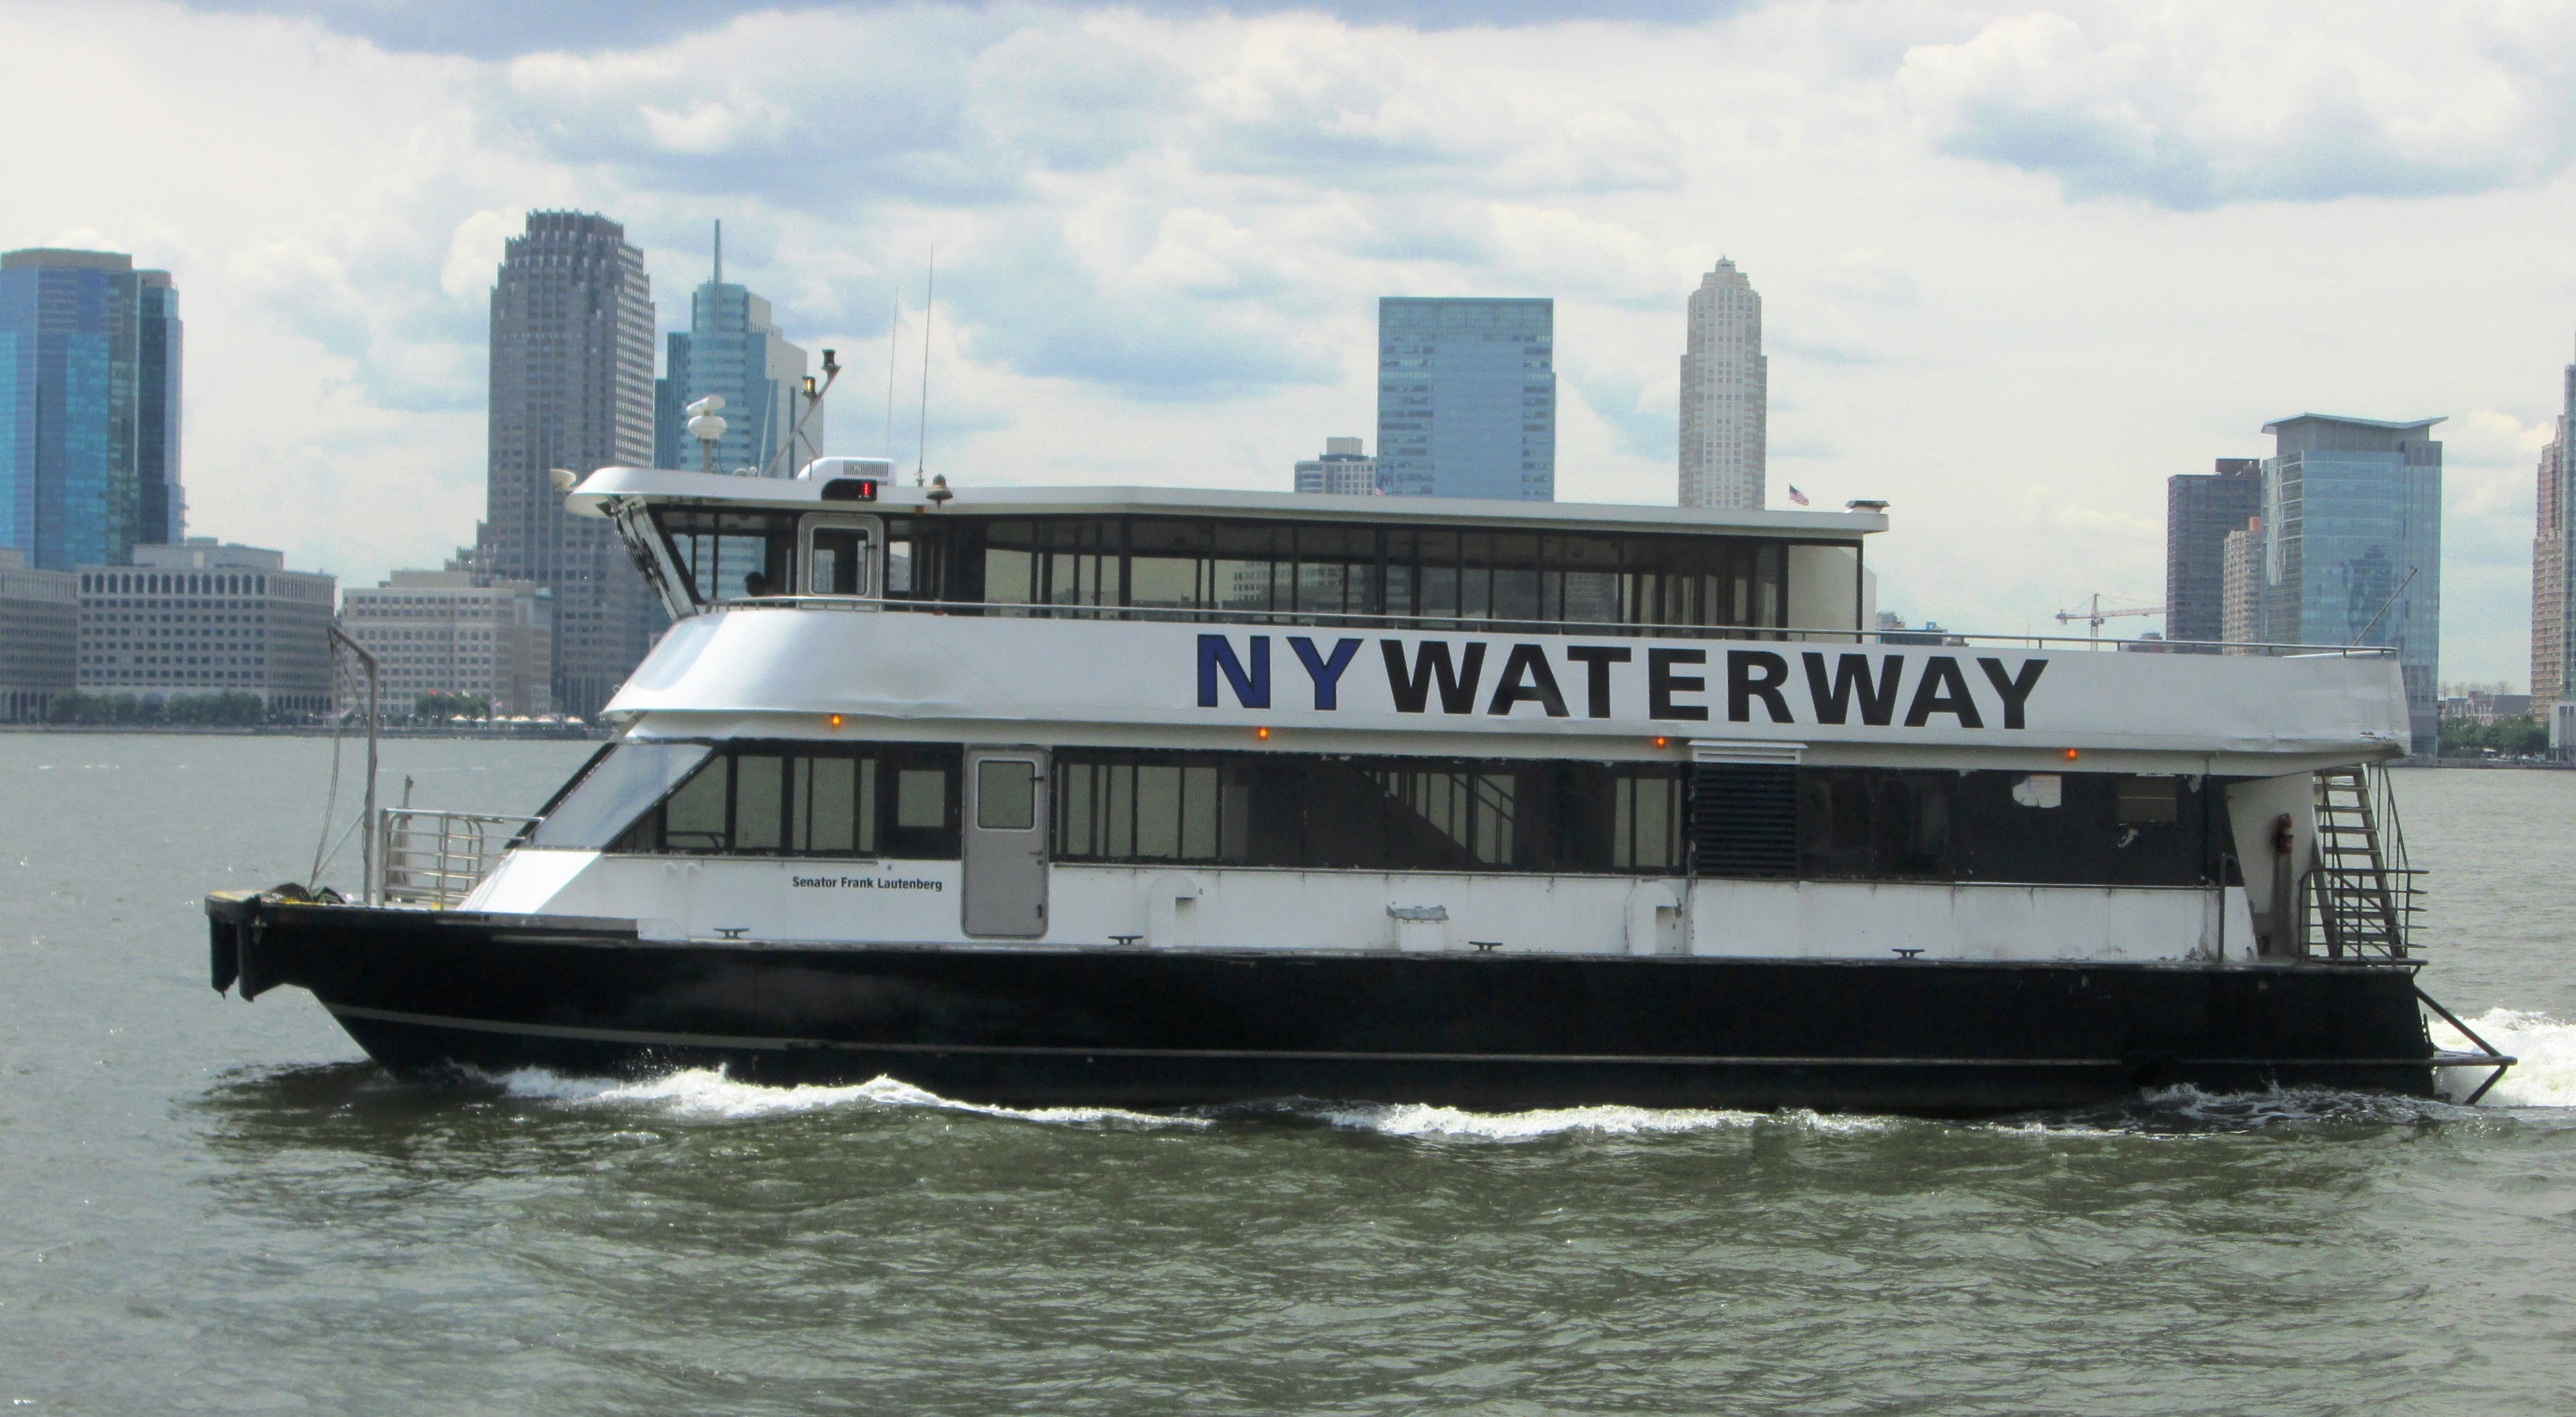 Shuttle Bus Schedule for Greenpoint ferry landing